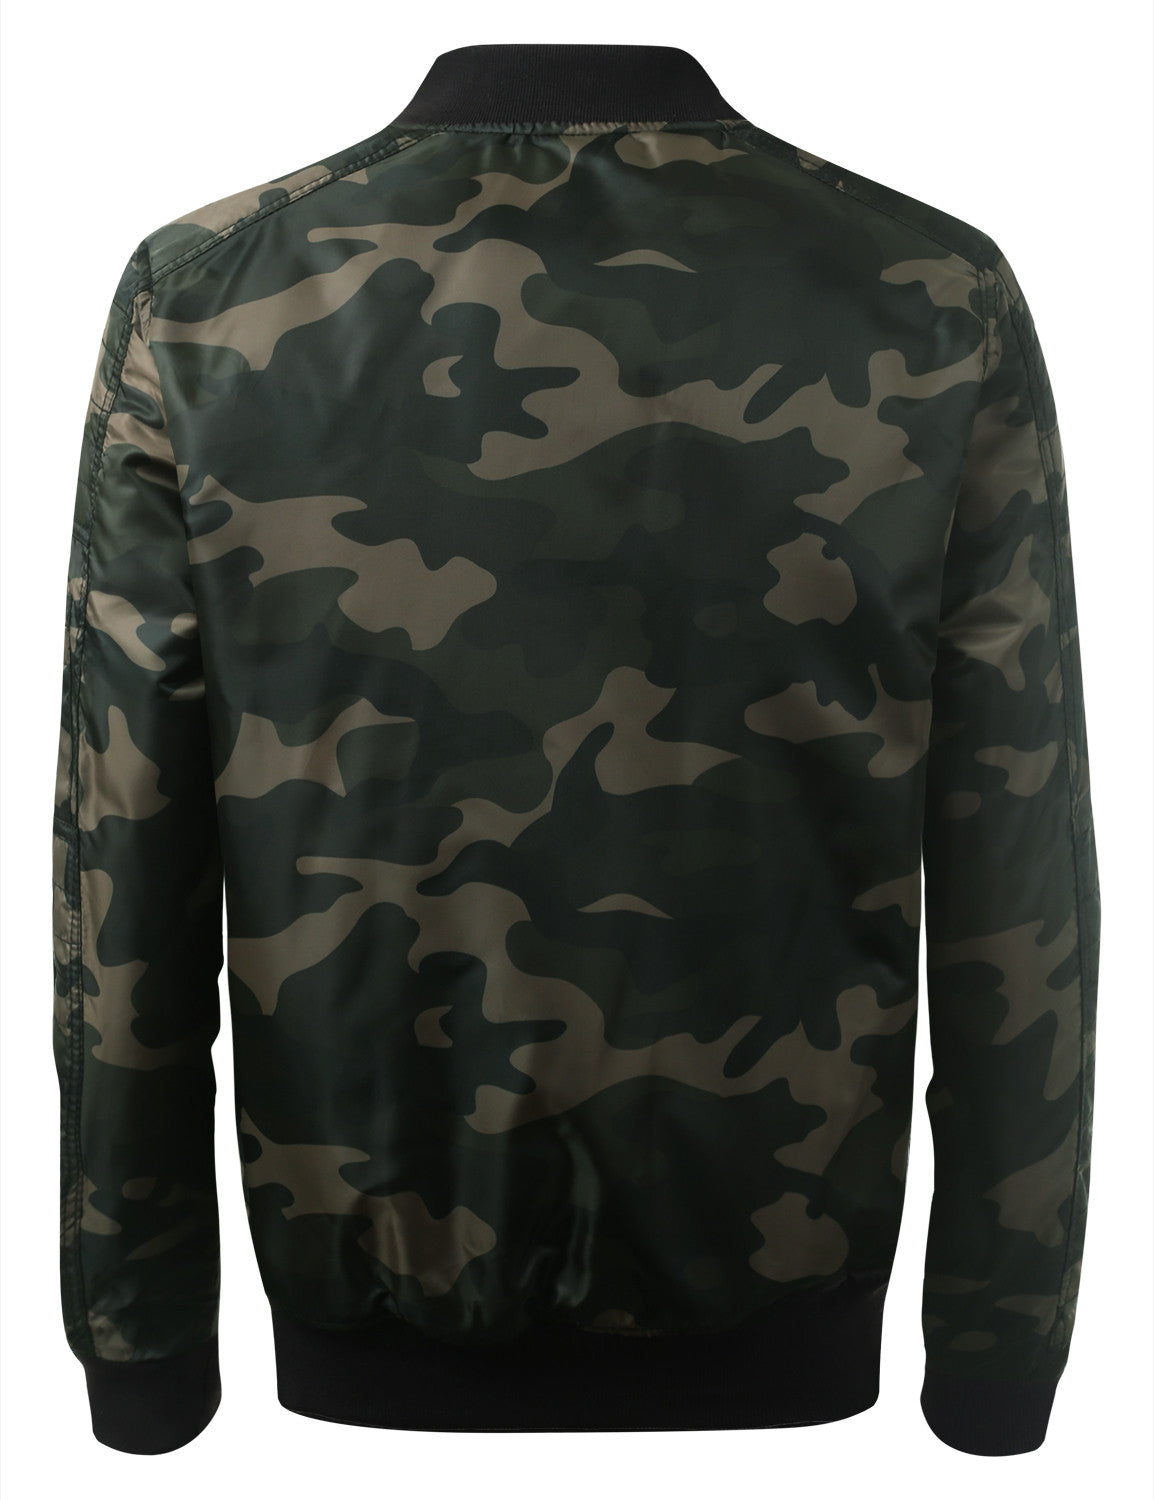 WOODLAND Camo Bomber Flight Jacket - URBANCREWS